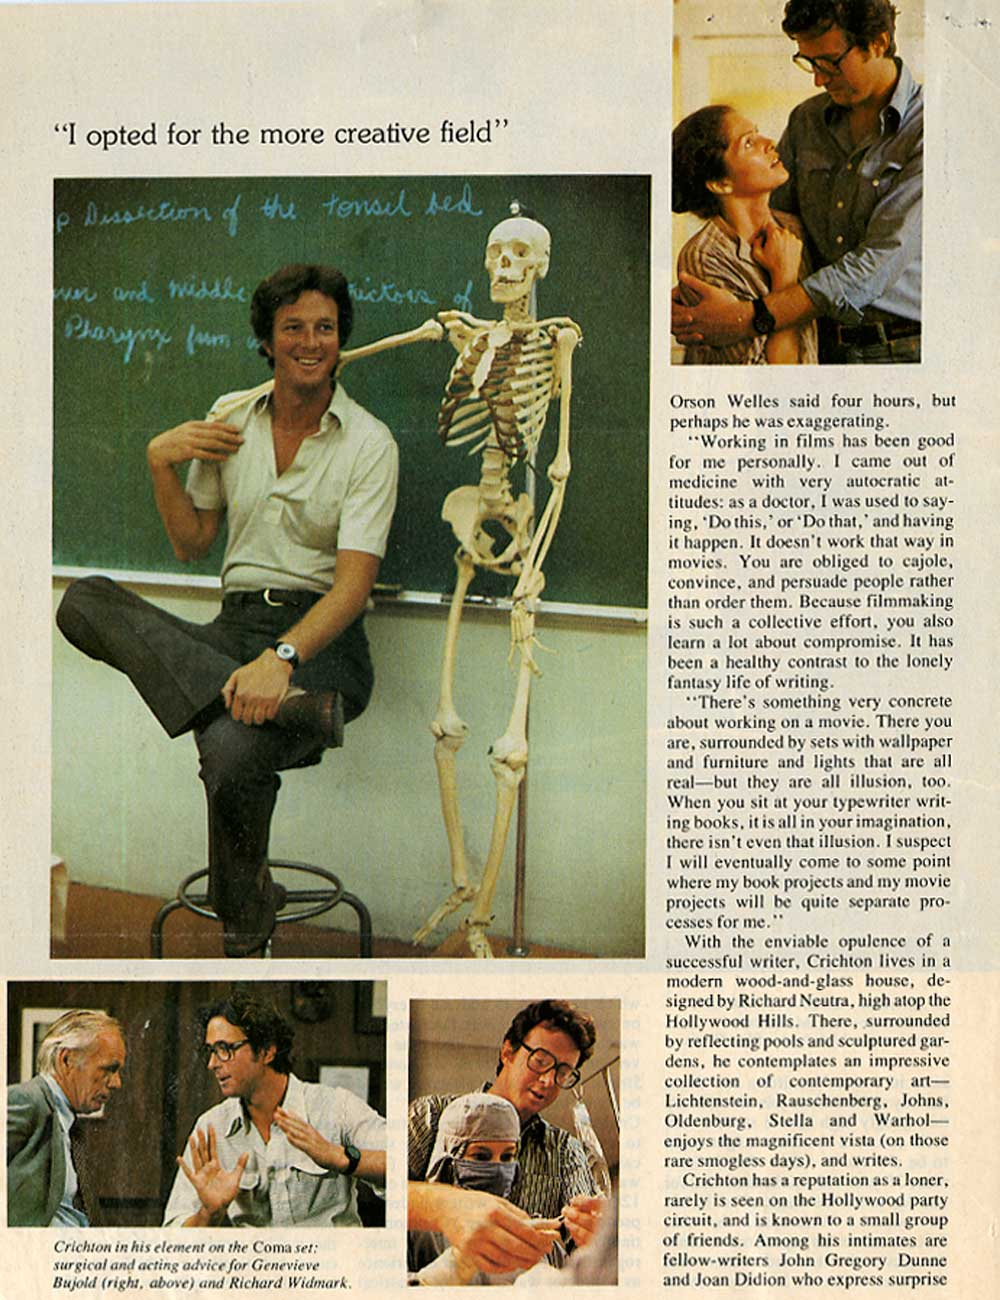 Michael Crichton in Signature Magazine - 1978